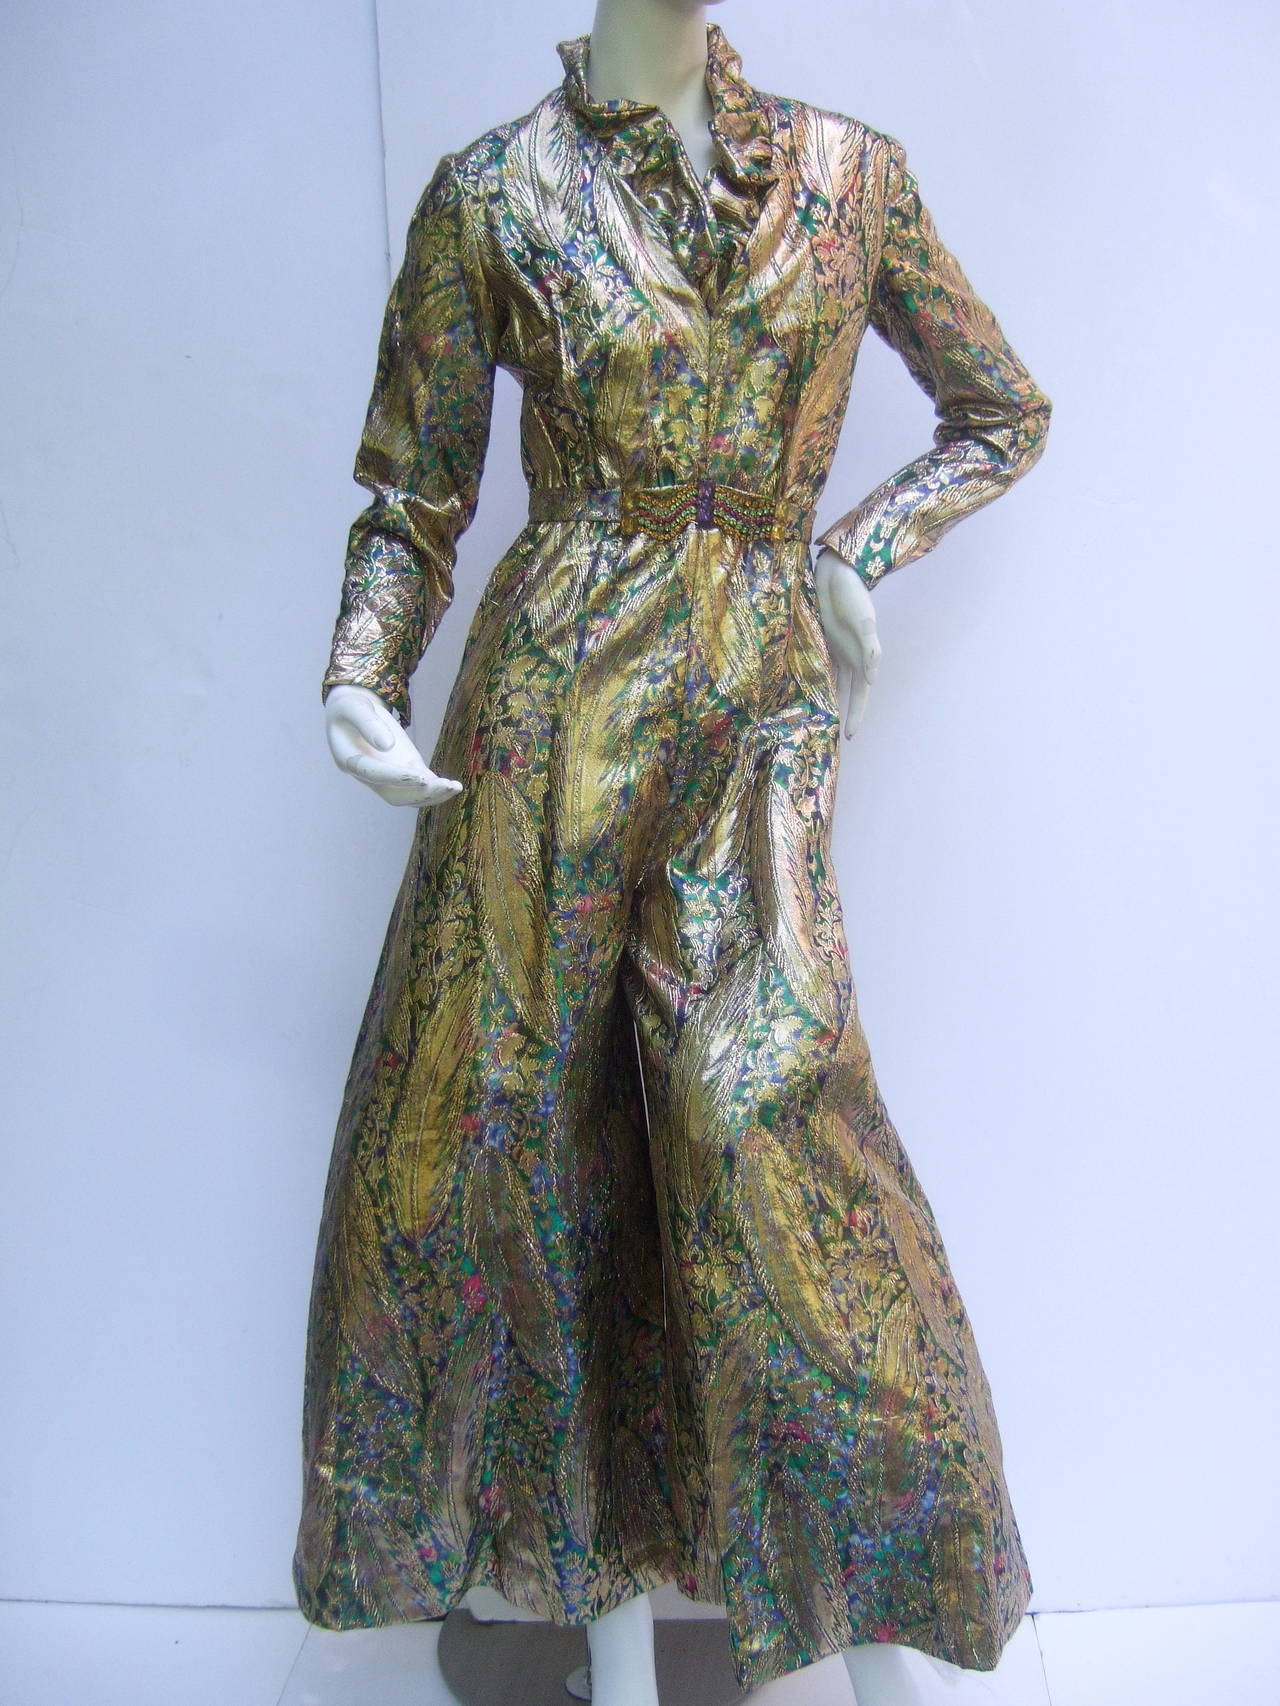 1970s Gold lame peacock feather jeweled jumpsuit c 1970 The exotic lame jumpsuit is designed with gold metallic  feathers with accents of green, blue & fuchsia colors  The lavish gold metallic jumpsuit is embellished with a glittering crystal